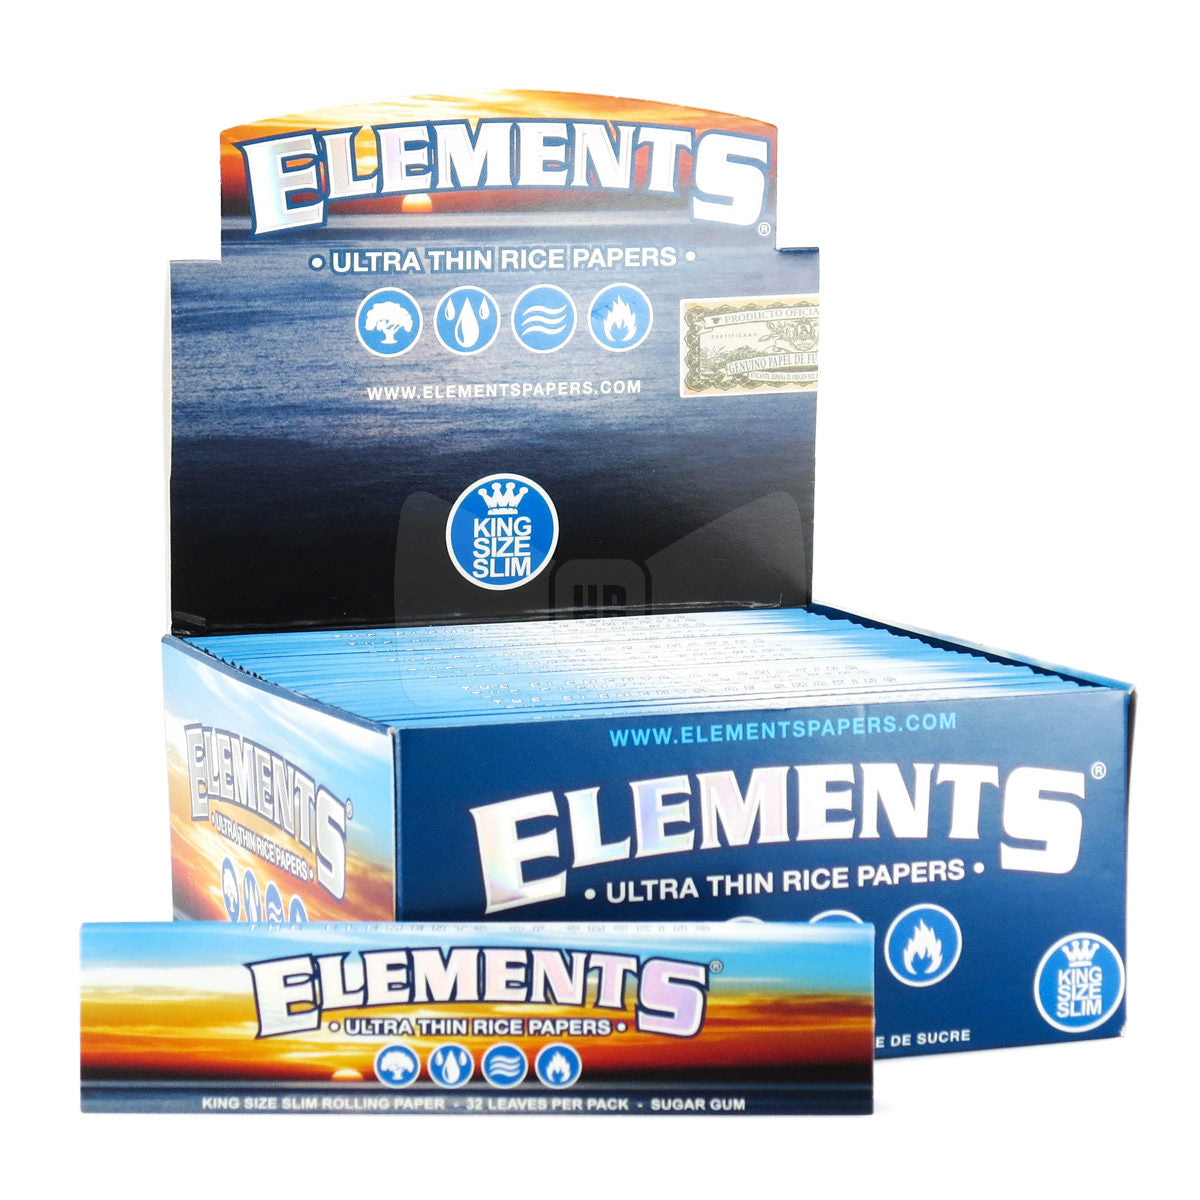 Elements King Size rolling papers